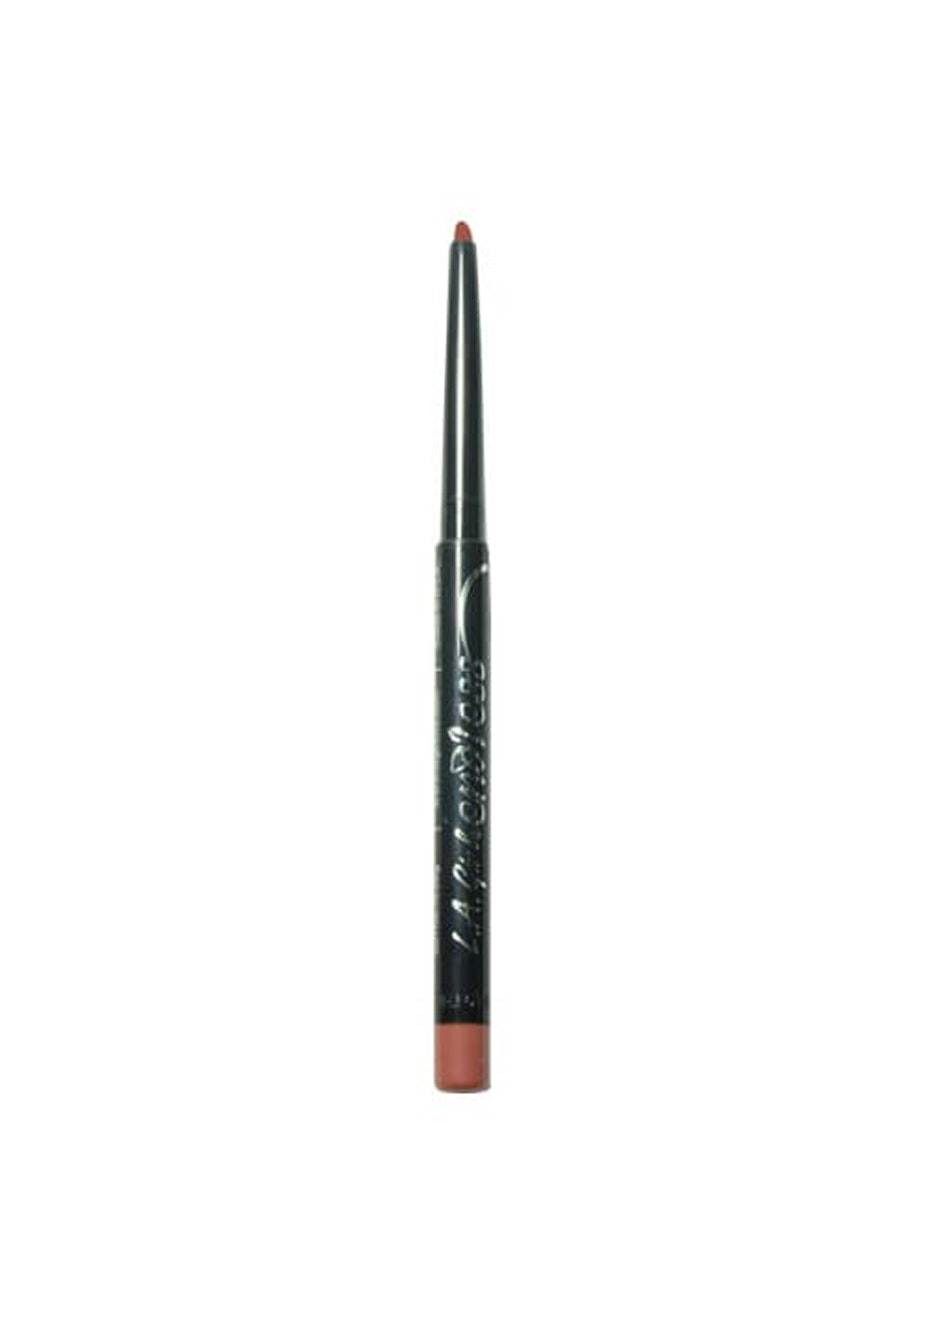 LA Girl Endless Auto Lipliner Pencil - Natural